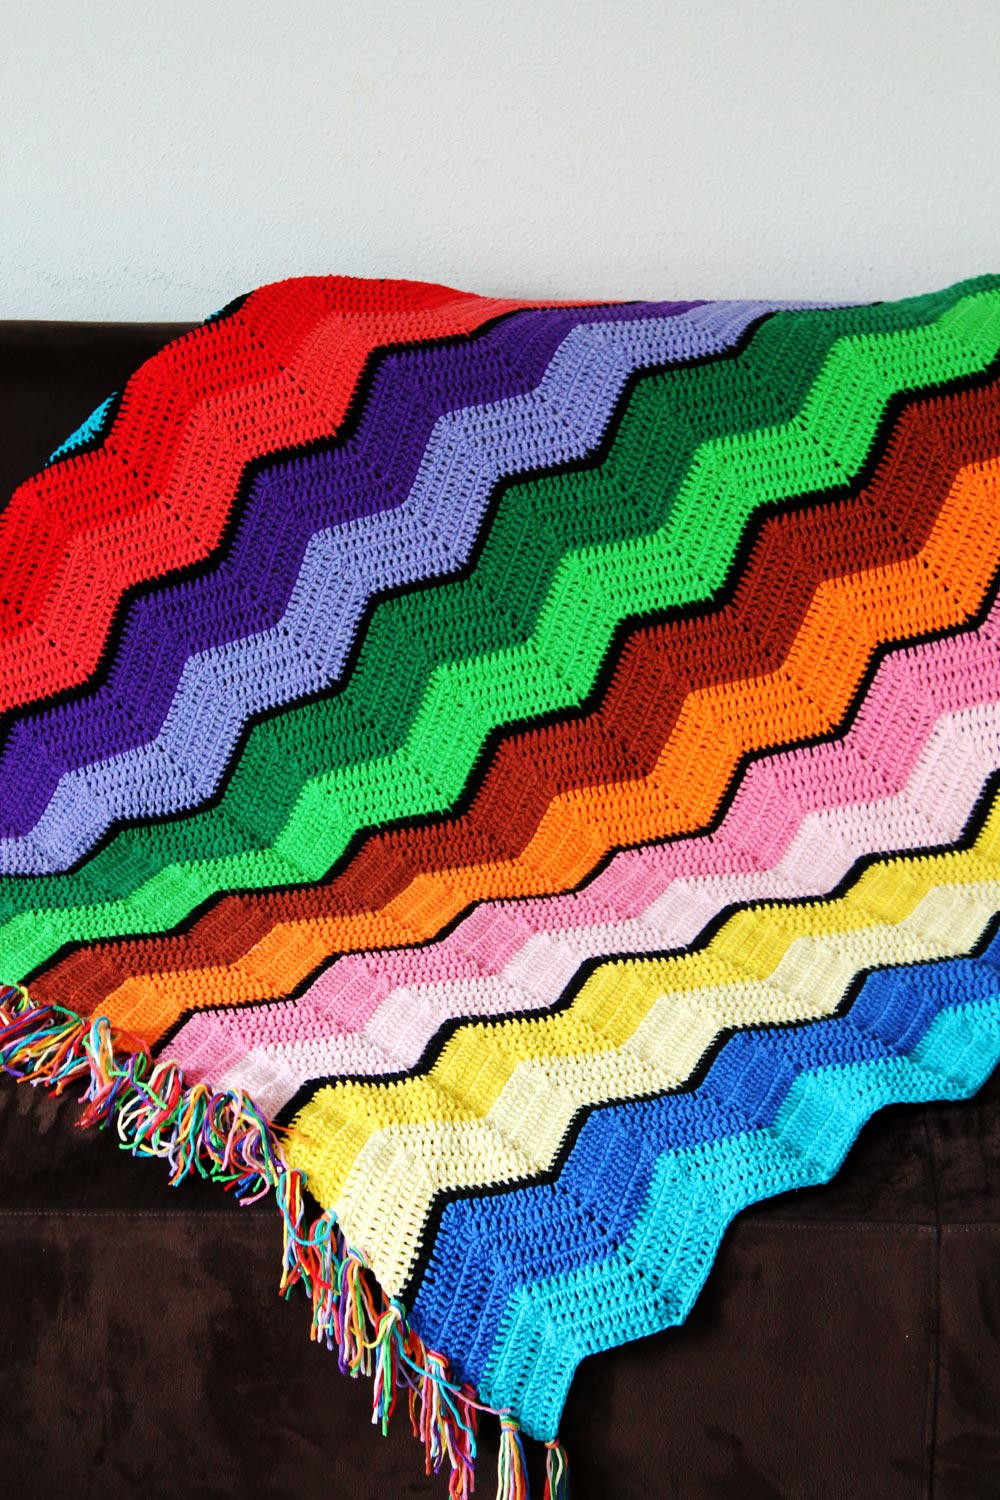 Crochet Afghan Patterns Fresh 51 Free Crochet Blanket Patterns for Beginners Of New 40 Pics Crochet Afghan Patterns